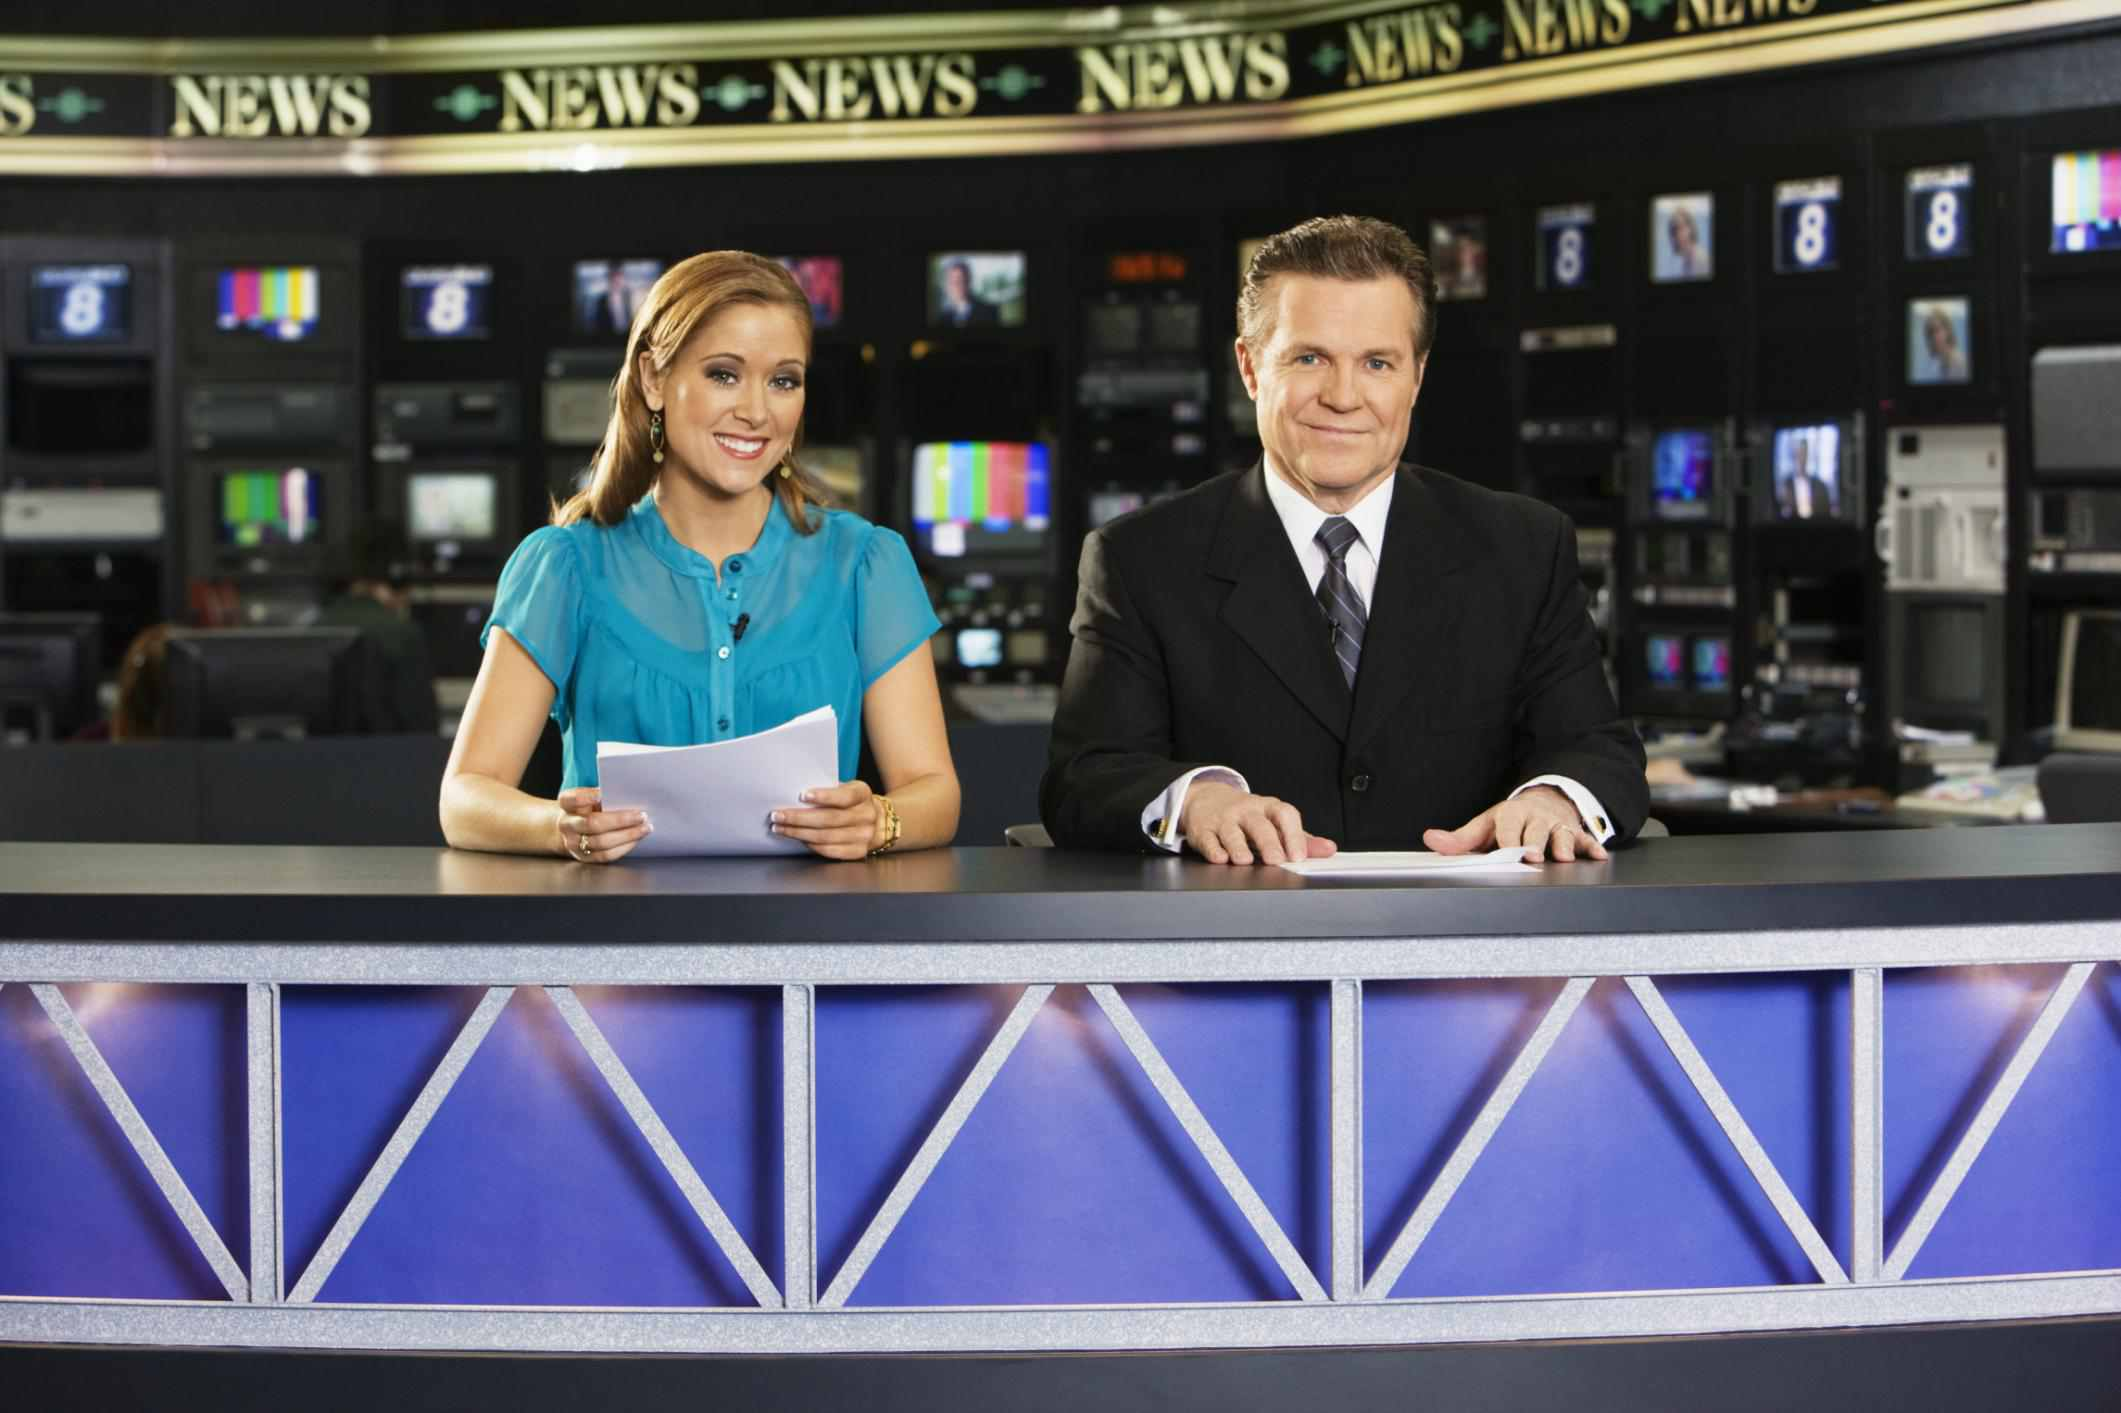 Two newscasters sitting at desk